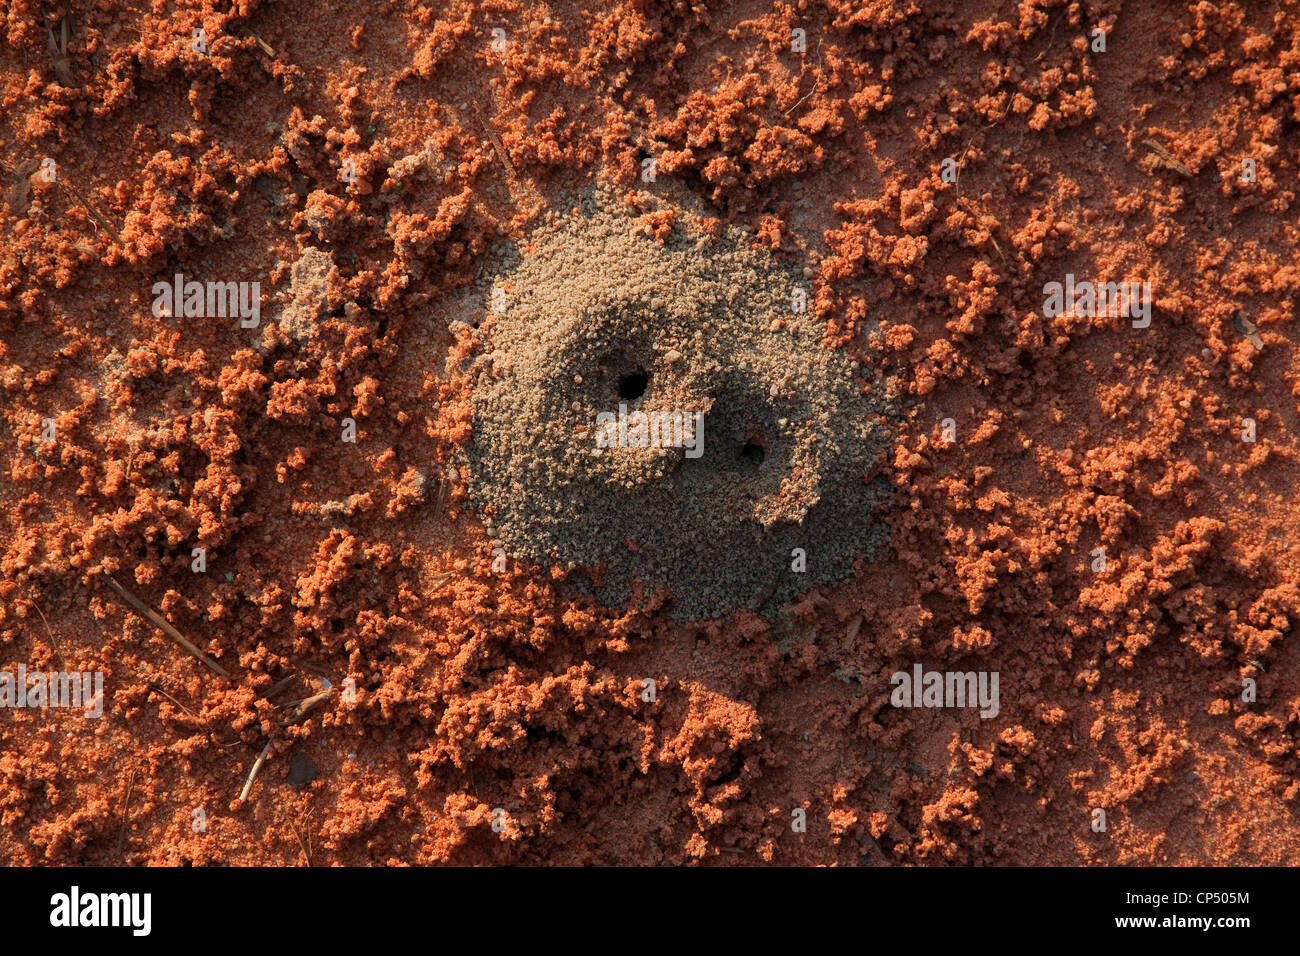 Red Ant  (Solenopsis species) Hill Northern Florida USA Stock Photo